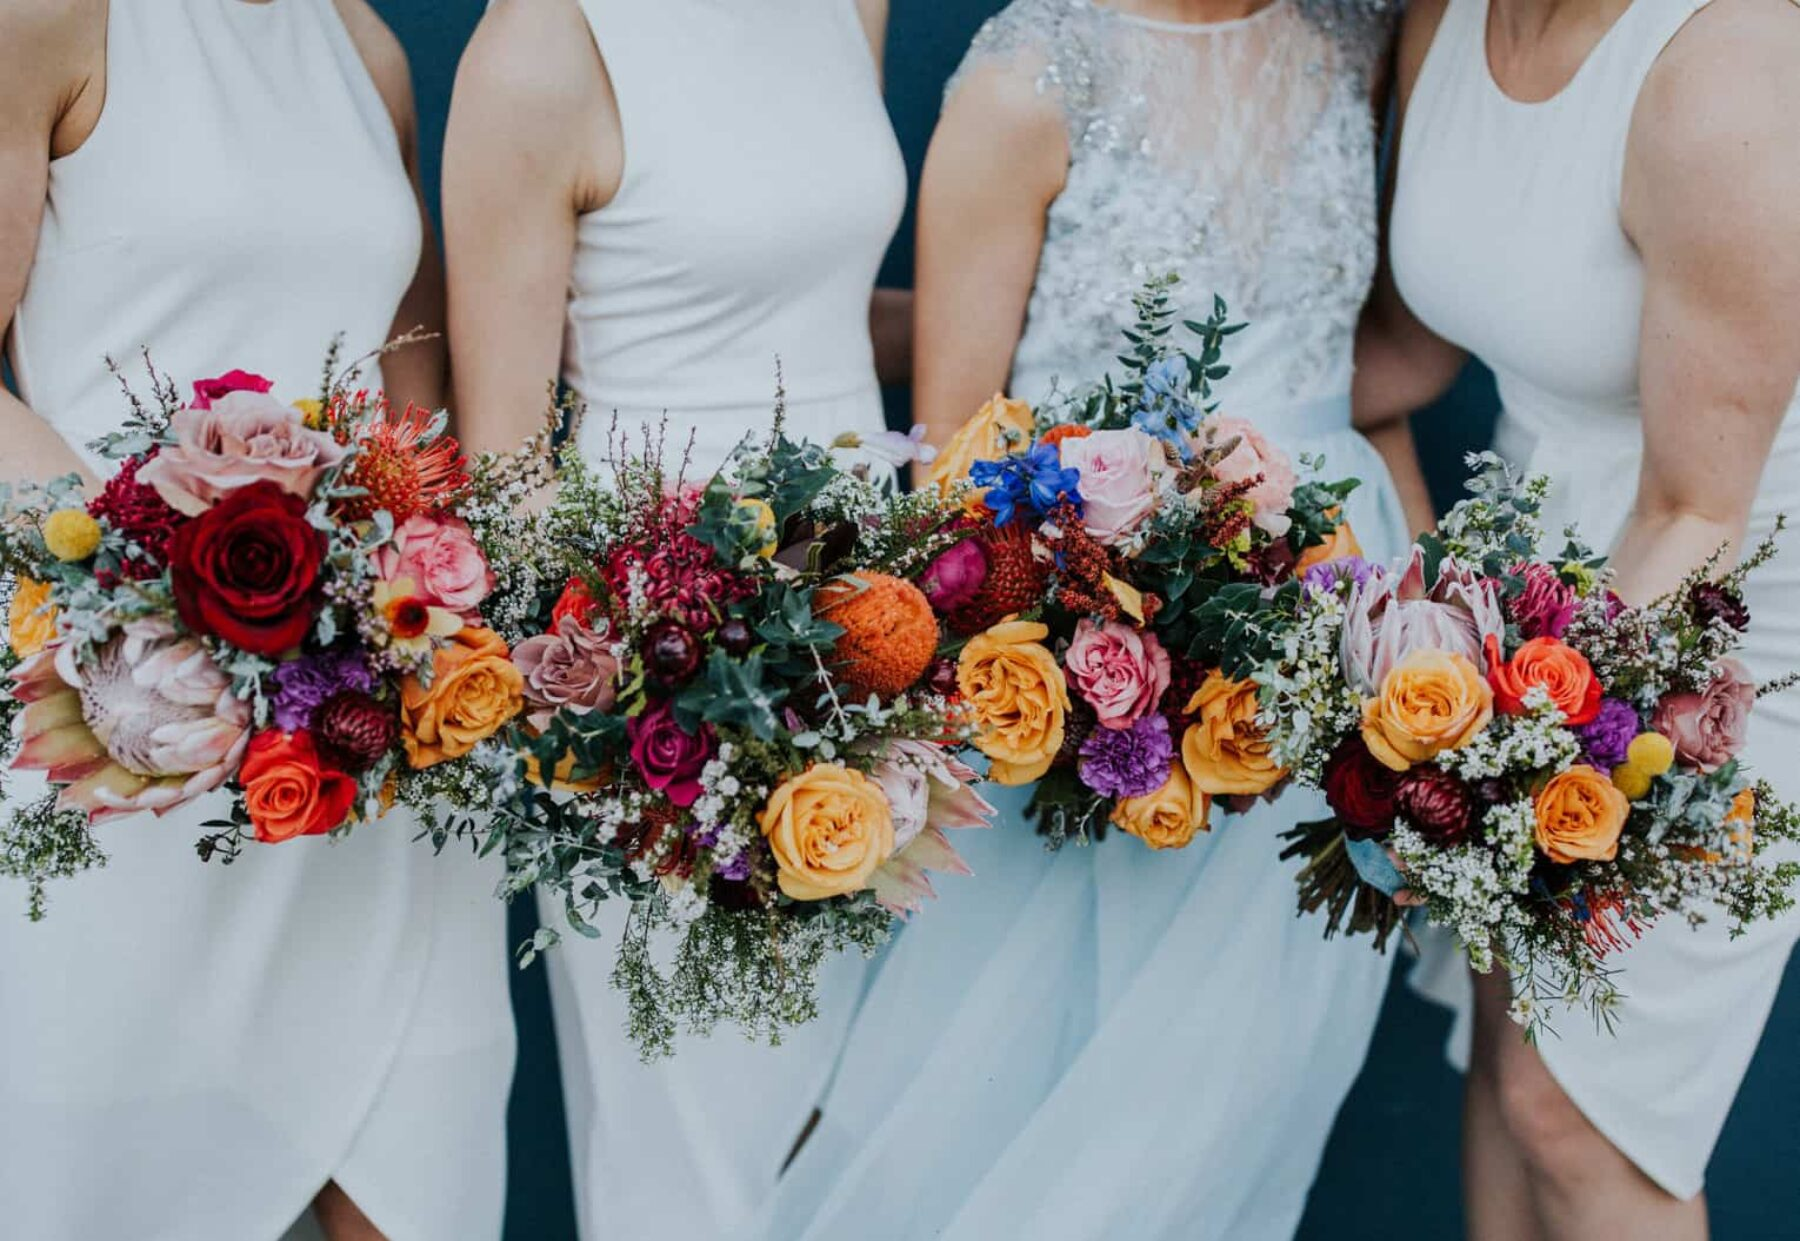 bridesmaids in modern white dresses with colourful bouquets